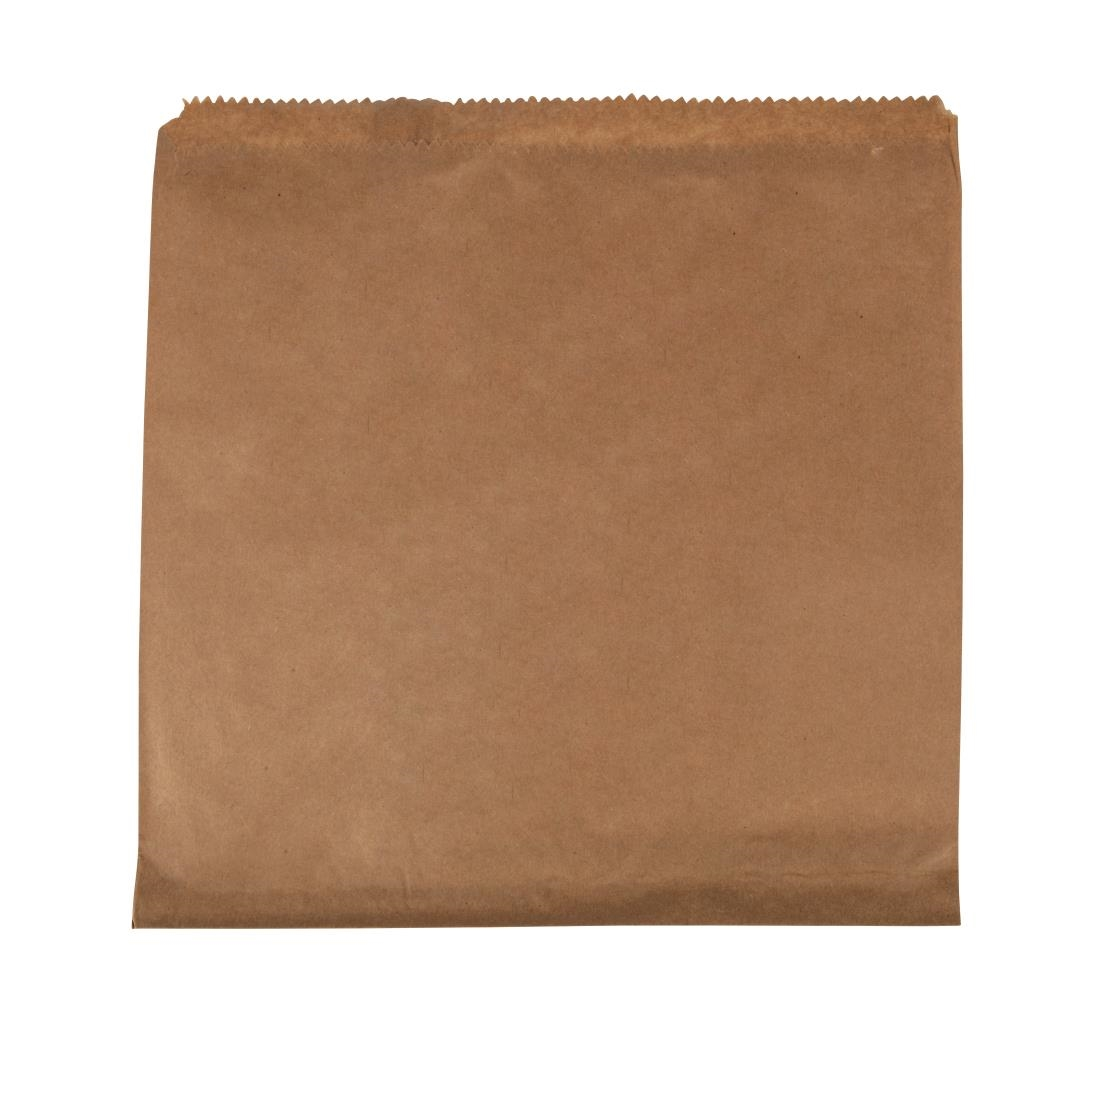 Image of Fiesta Brown Paper Counter Bags Large (Pack of 1000) Pack of 1000